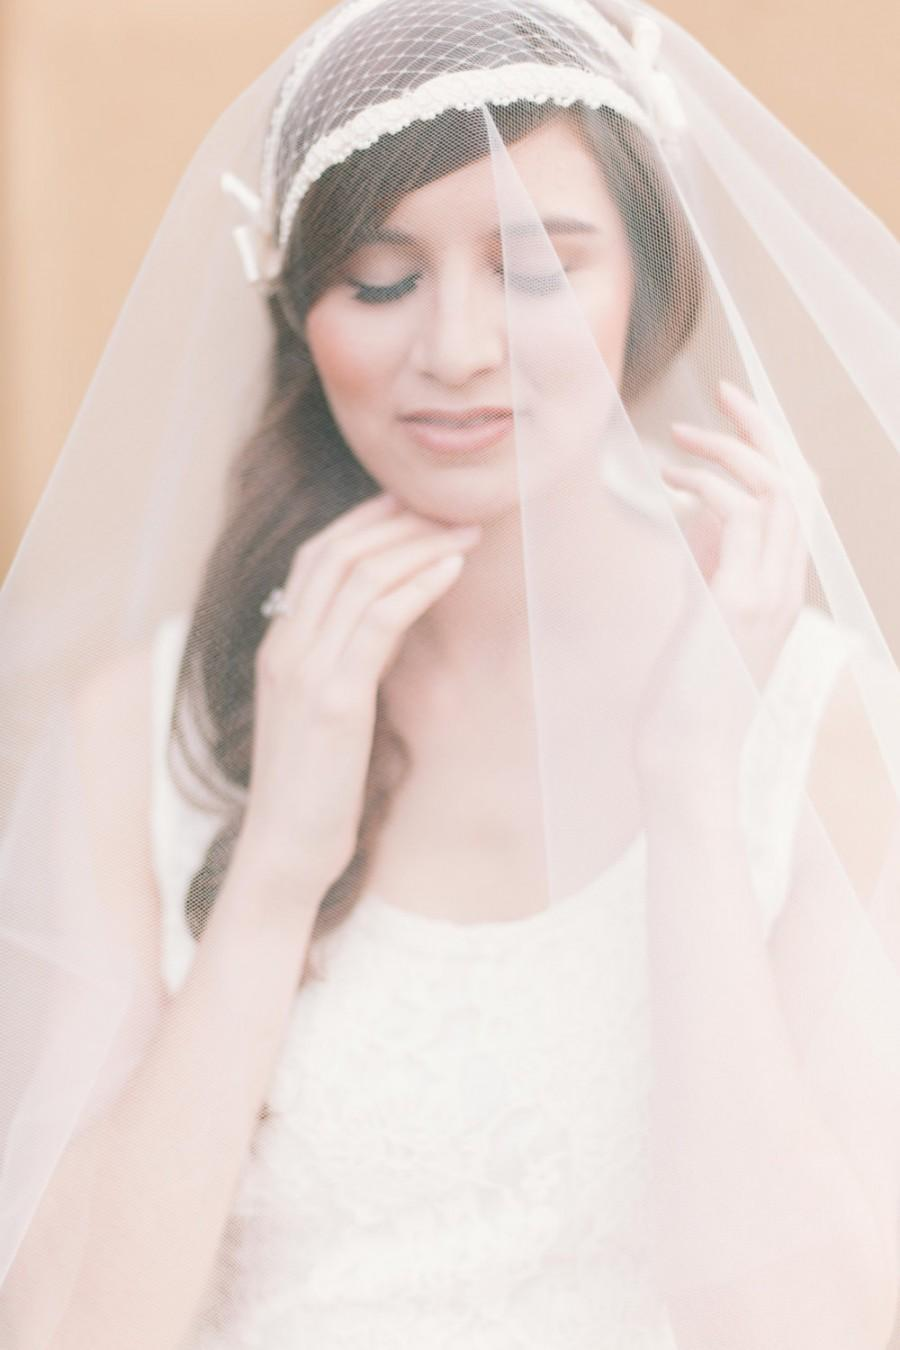 Mariage - Cap veil with drop veil art deco bridal cap veil circular drop veil ivory juliette cap veil round drop veil raw edge Ivory or white